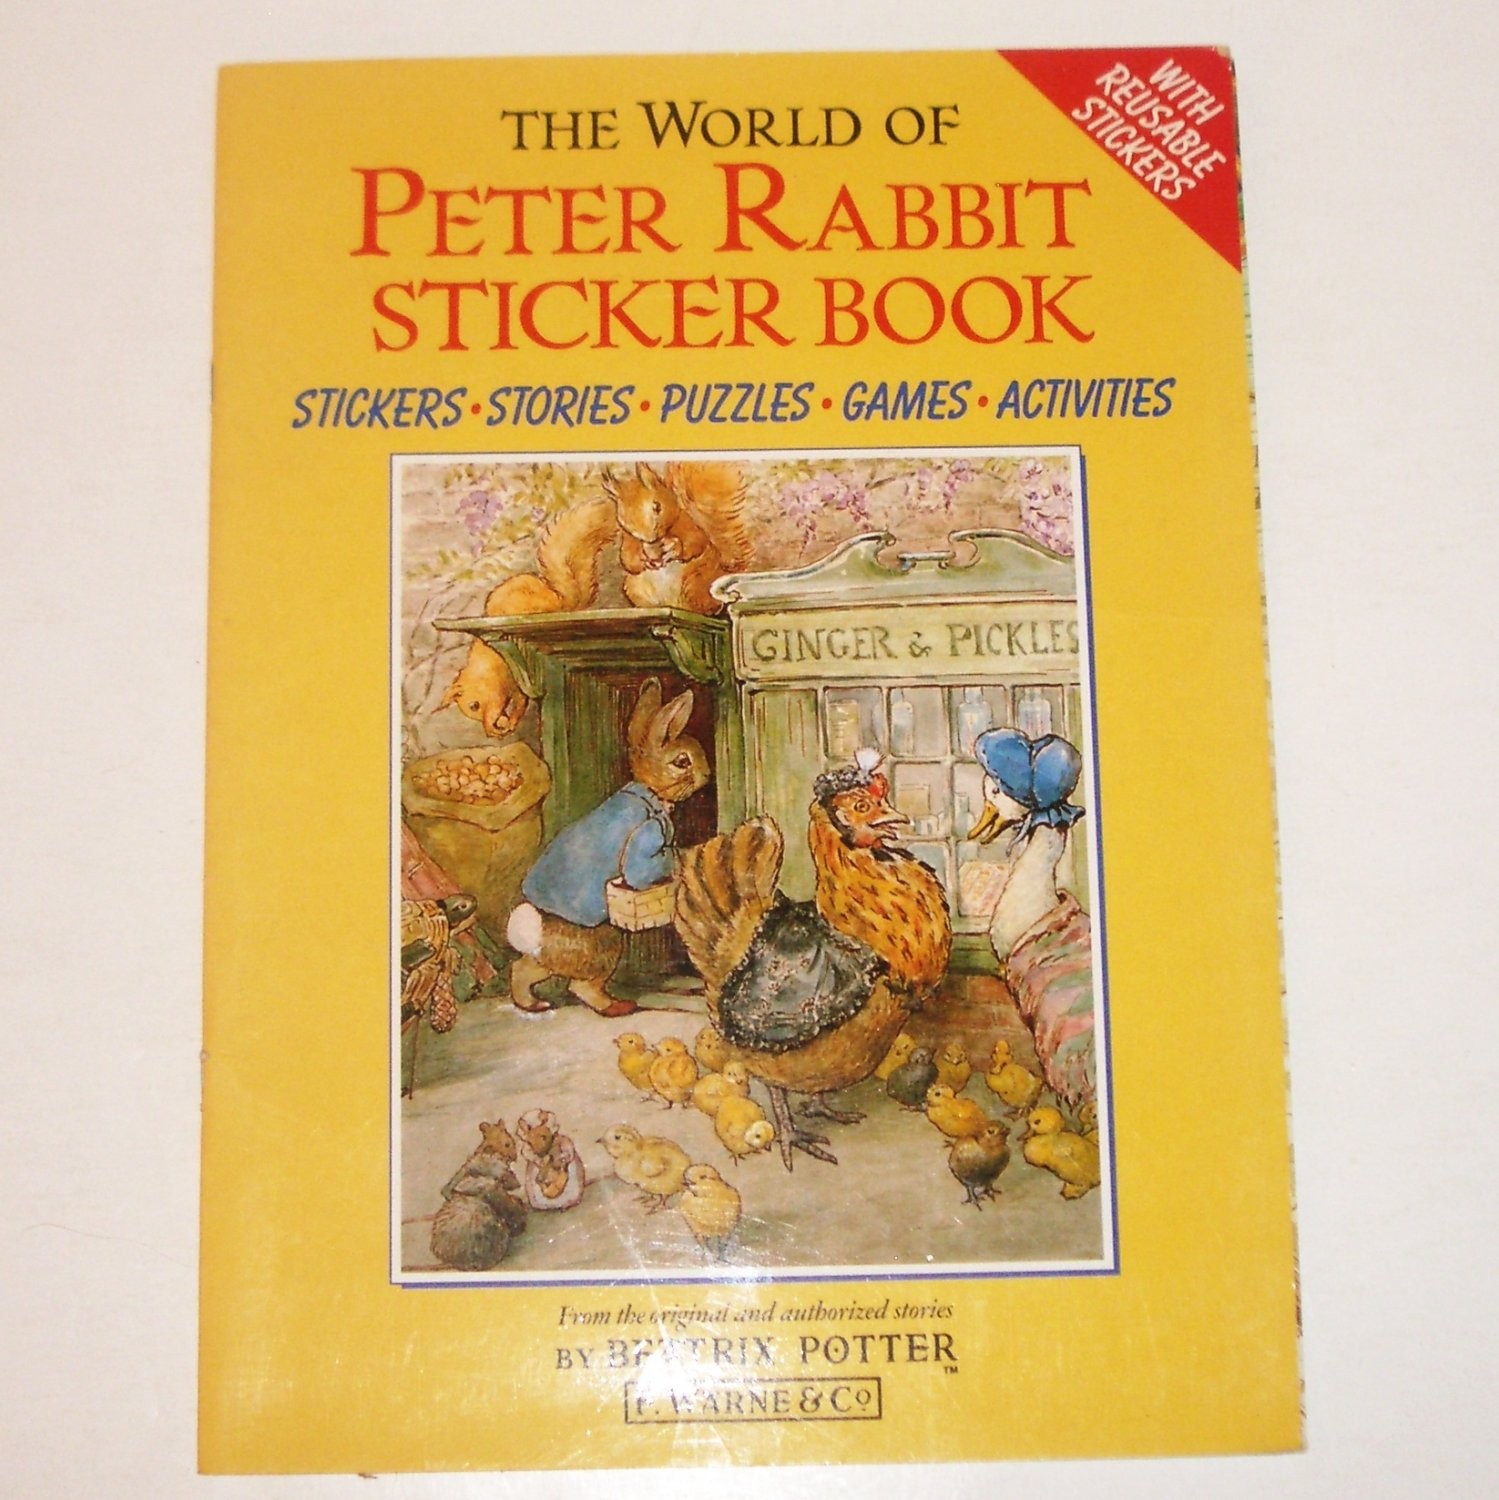 The World of Peter Rabbit Sticker Book by Beatrix Potter 1990